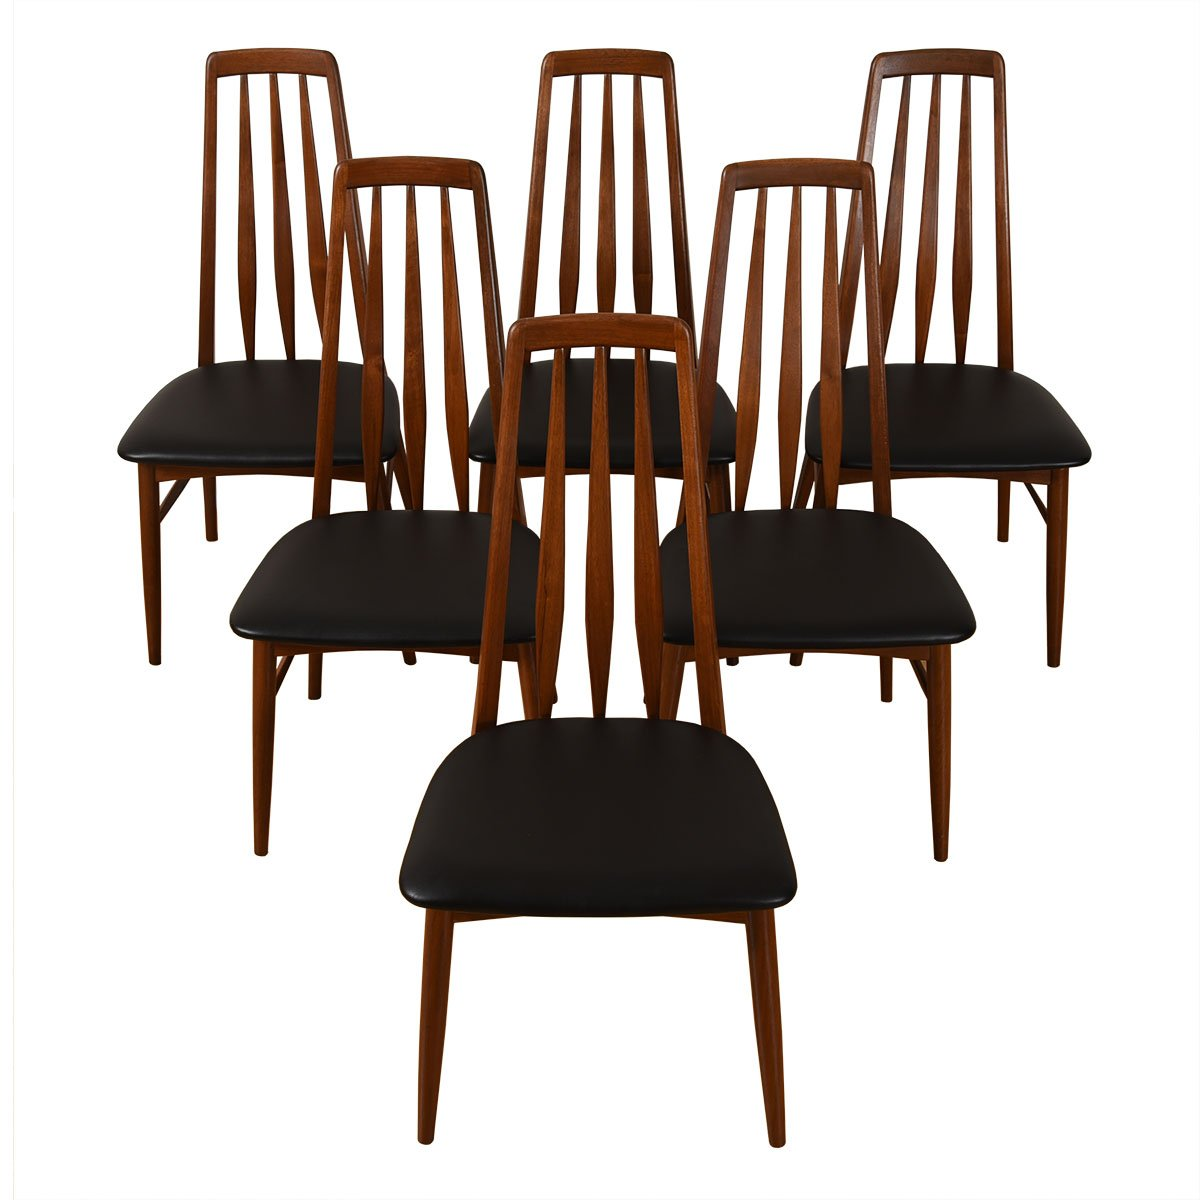 Walnut Set of 6 Danish Modern Side Dining Chairs